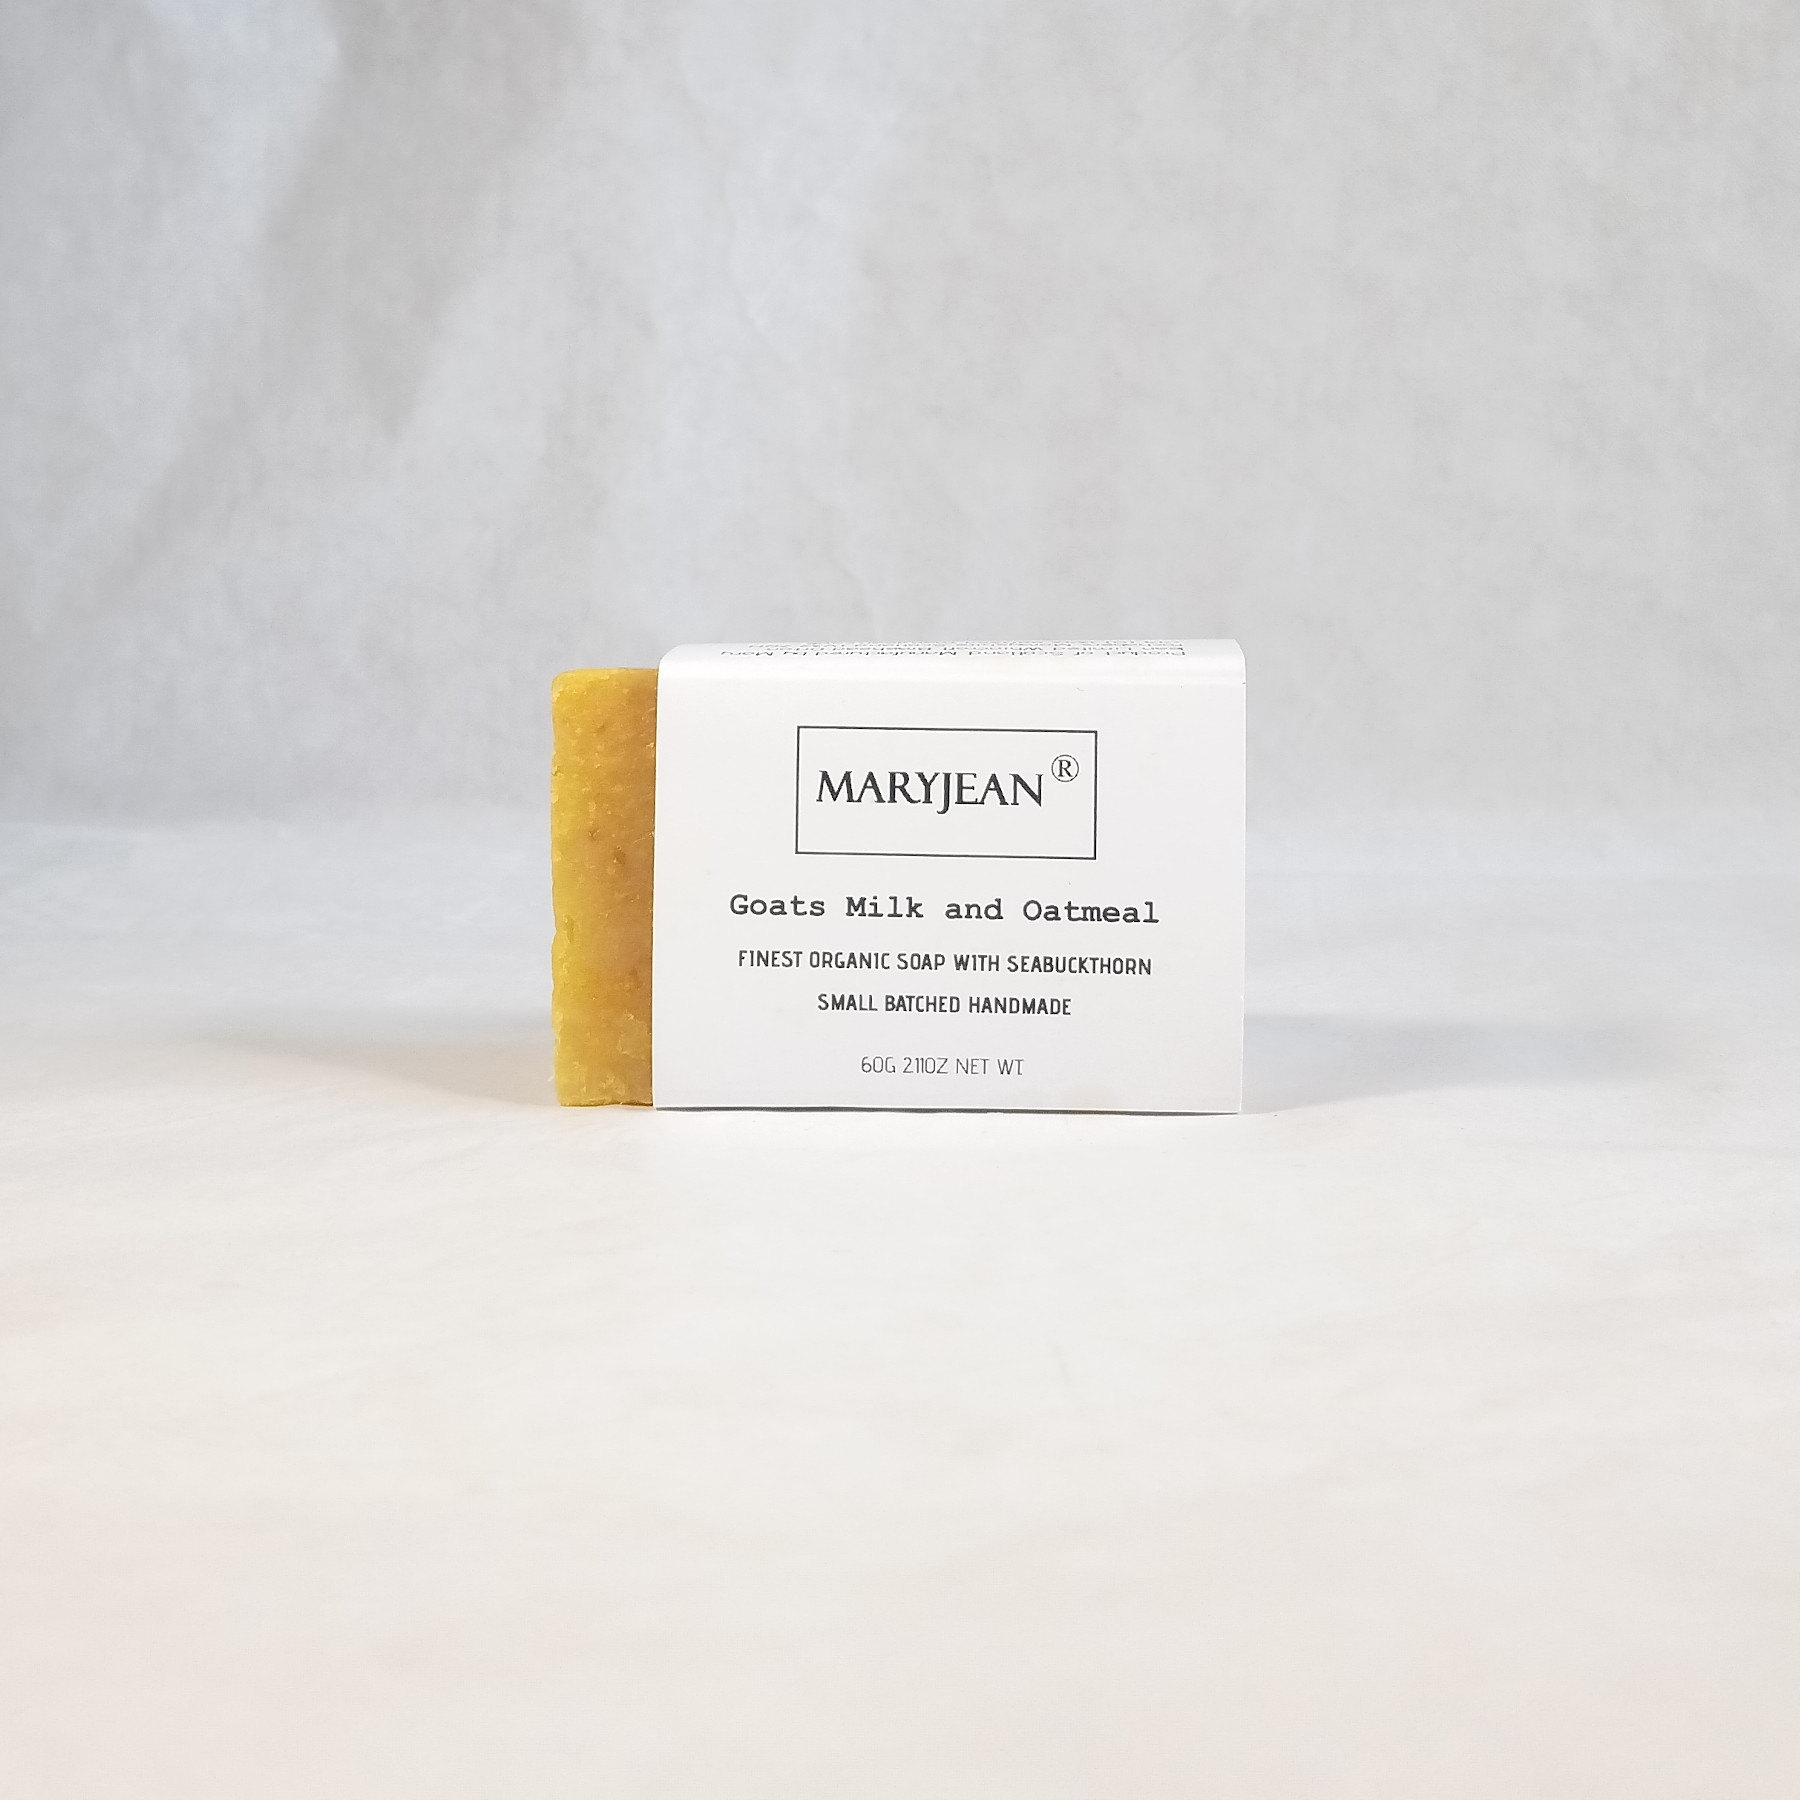 Value Pack 4 bars Travellers Organic Scottish Exfoliating Body Scrub Soaps Handmade with Sea Buckthorn Available in a multi value pack this 4 bars soap from natural ingredients to exfoliate and polish your skin this soap will also repair for longest care